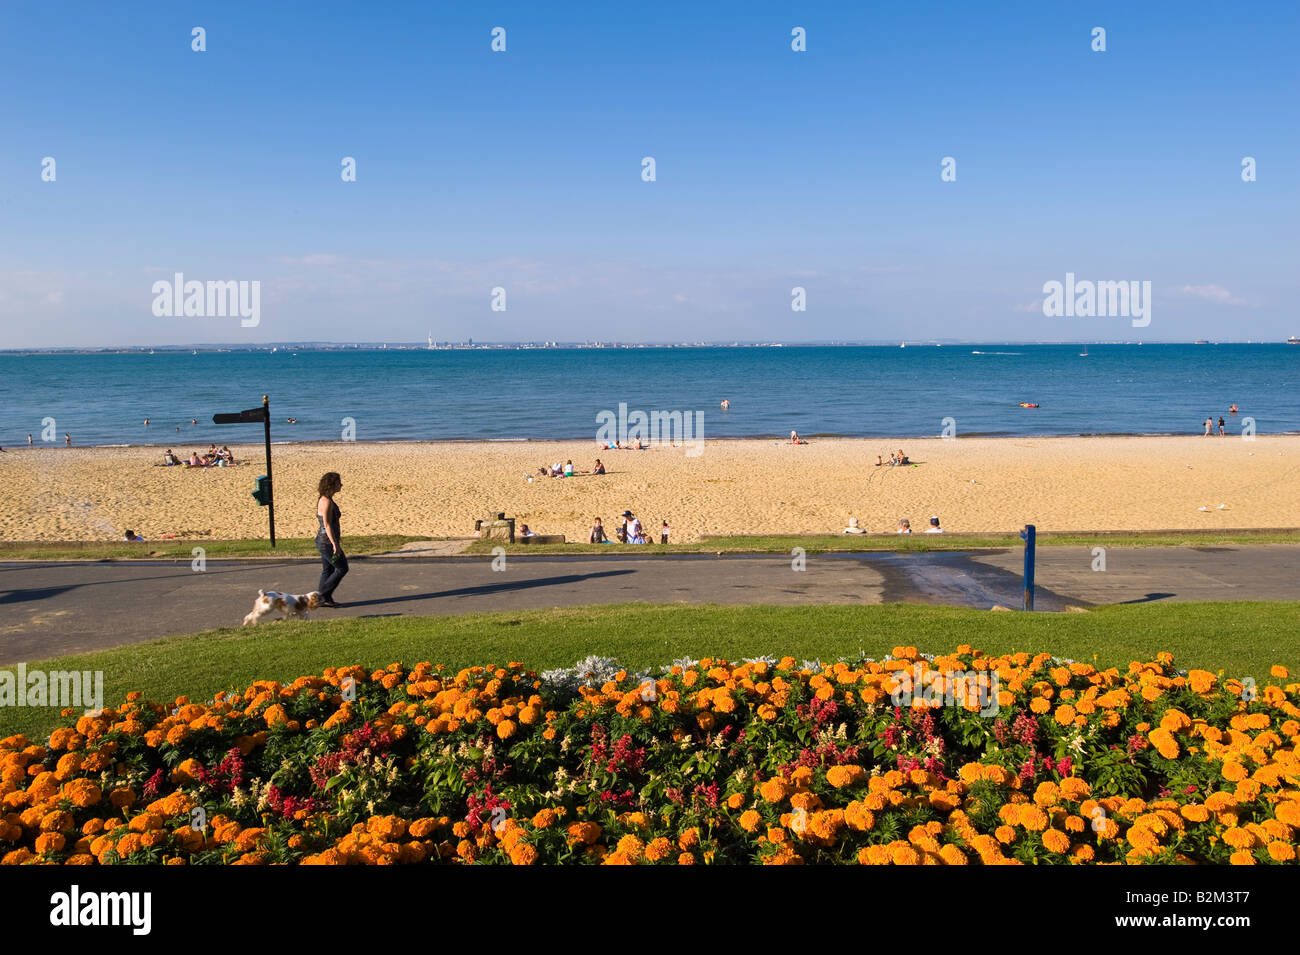 People enjoy hot summer day on beach in Appley Park overlooking English Channel Ryde Isle of Wight United Kingdom - Stock Image